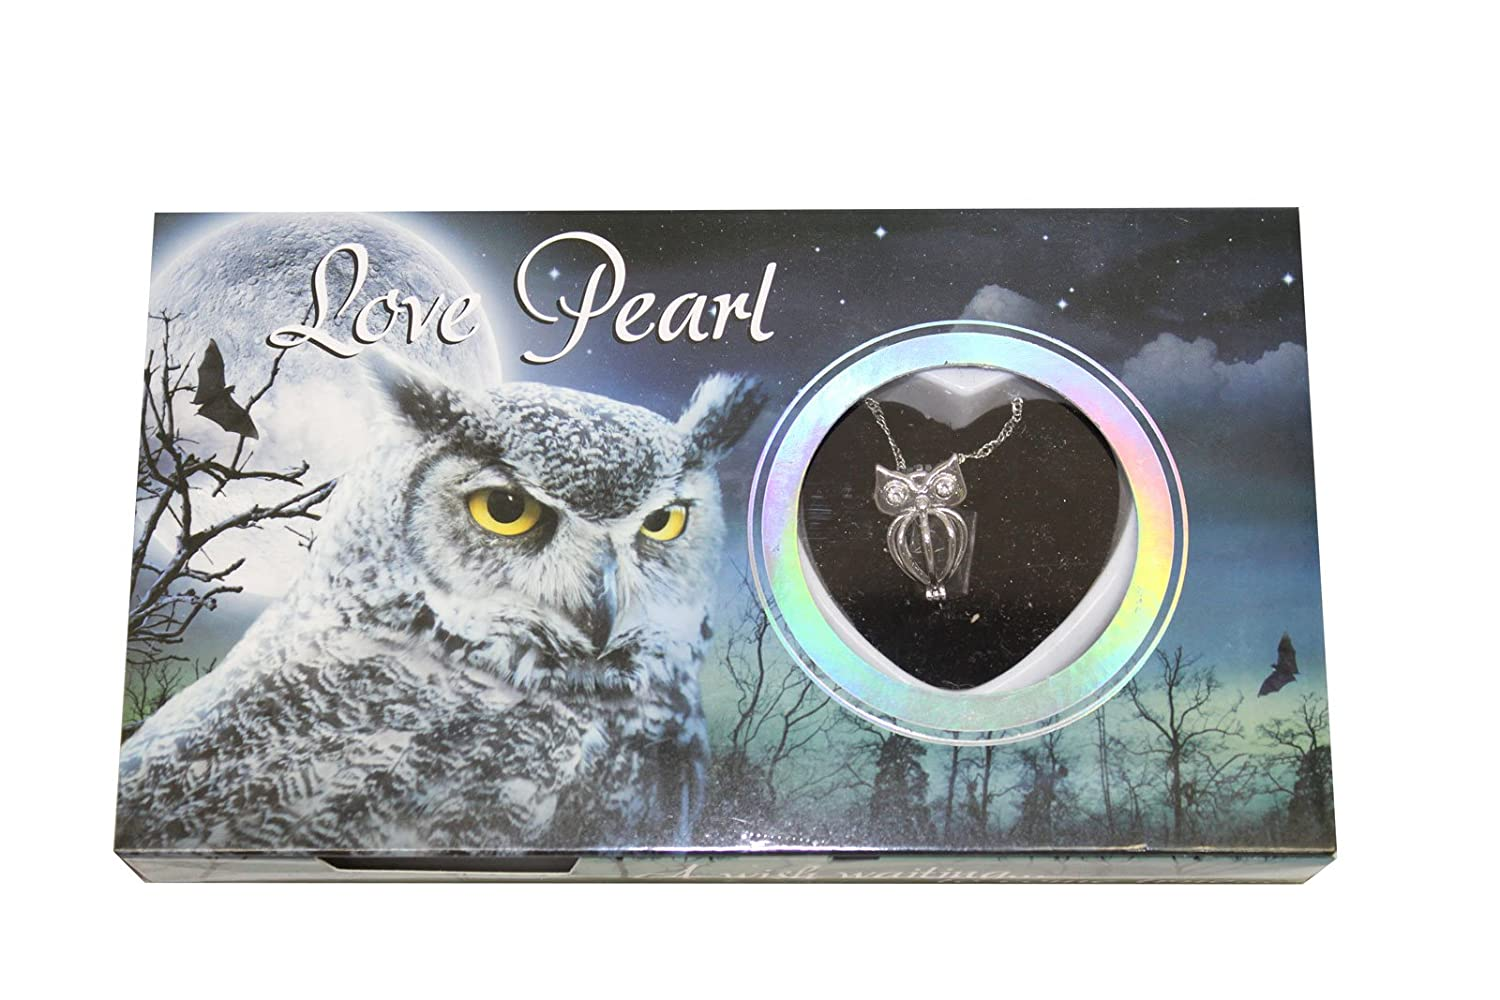 Owl Love Wish Pearl Kit Chain Necklace Kit Pendant Cultured Pearl in Kit Set With Stainless Steel Chain 16' Love Pearl